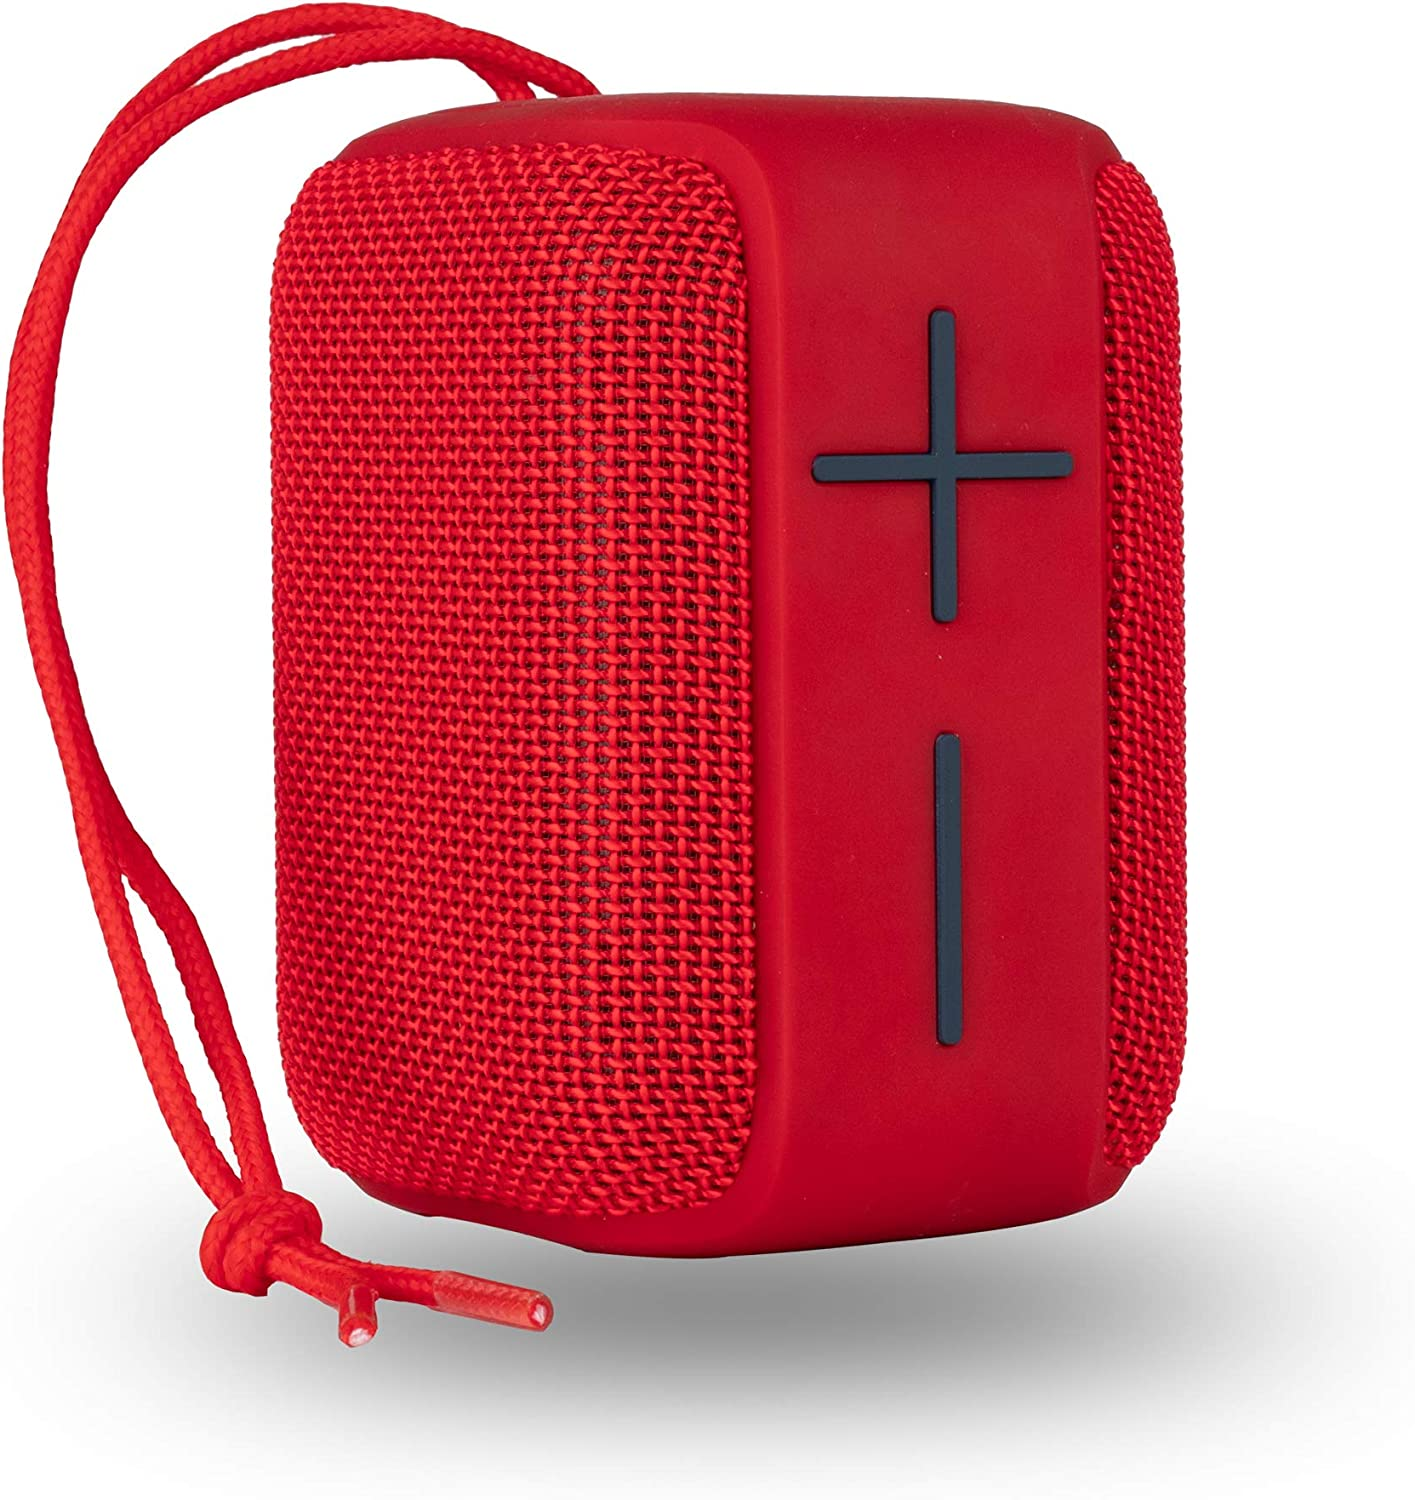 NGS Roller Coaster Red - Altavoz portátil de 10W Compatible con Tecnología Bluetooth y True Wireless (USB/Micro SD-AUX IN), Resistente al Agua IPX6. Color Rojo